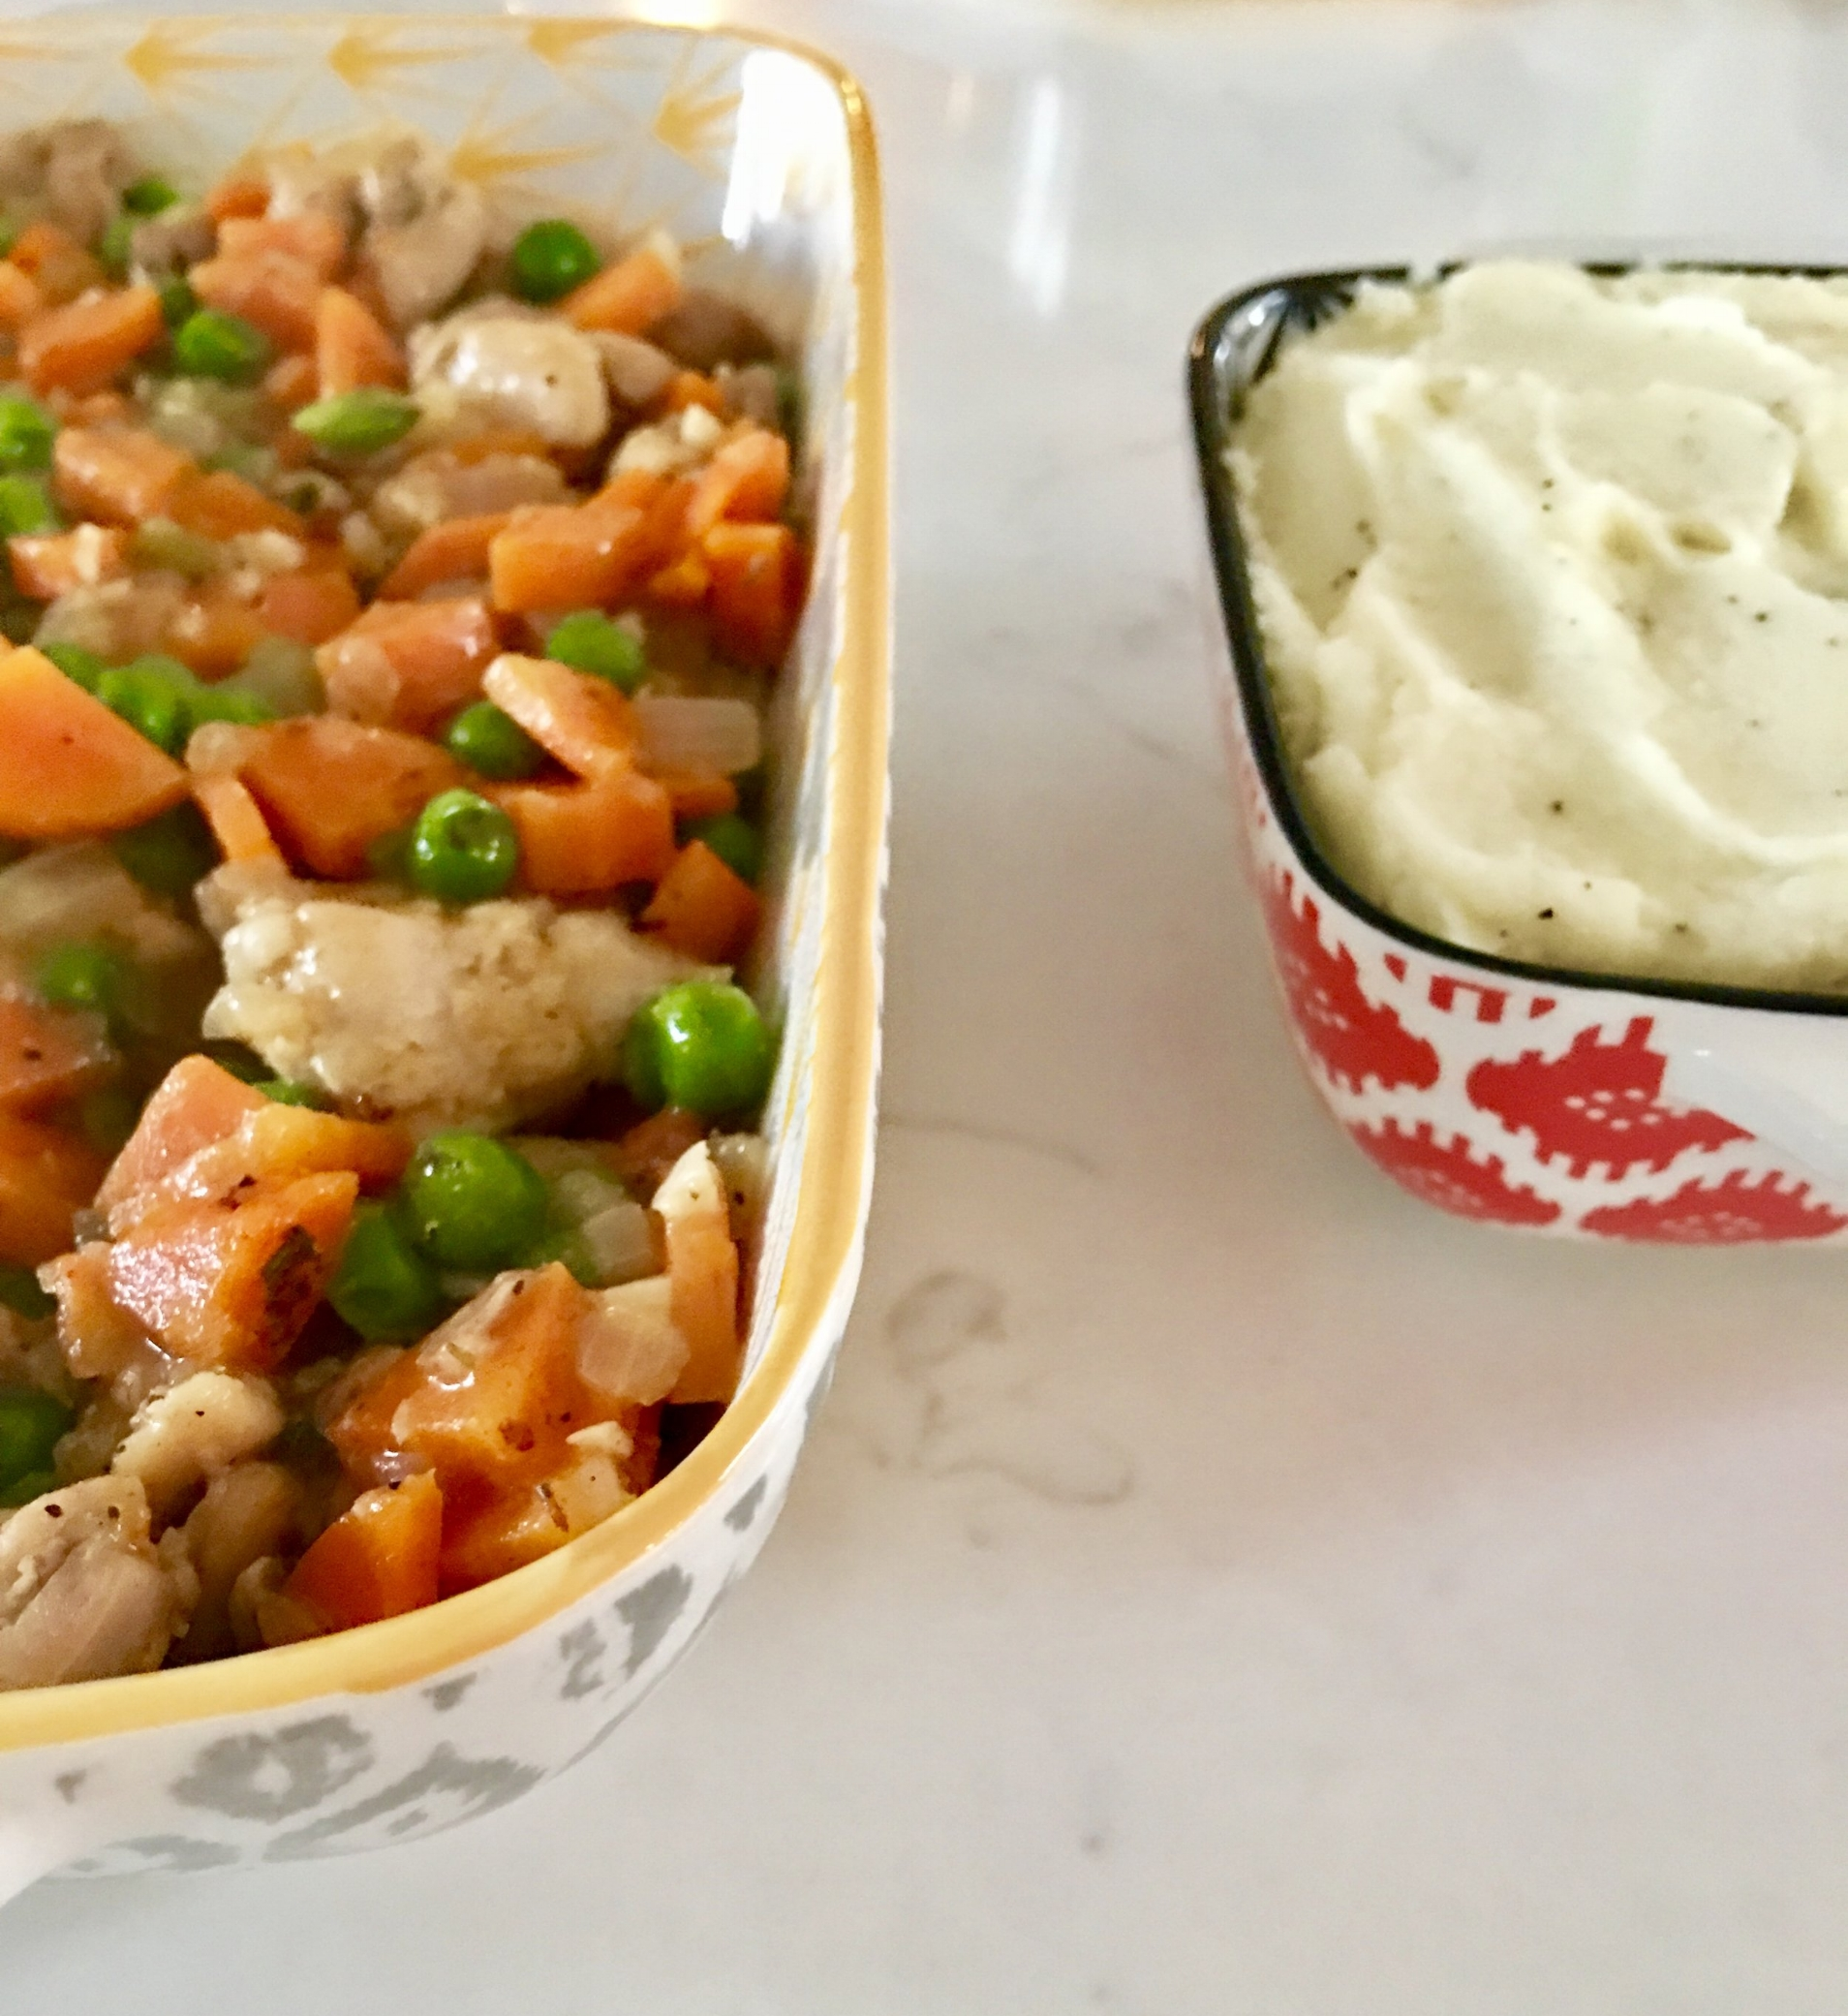 Make it work for you. Assemble in two or three single serving containers, then one larger for dinner, giving you lunches and dinner.